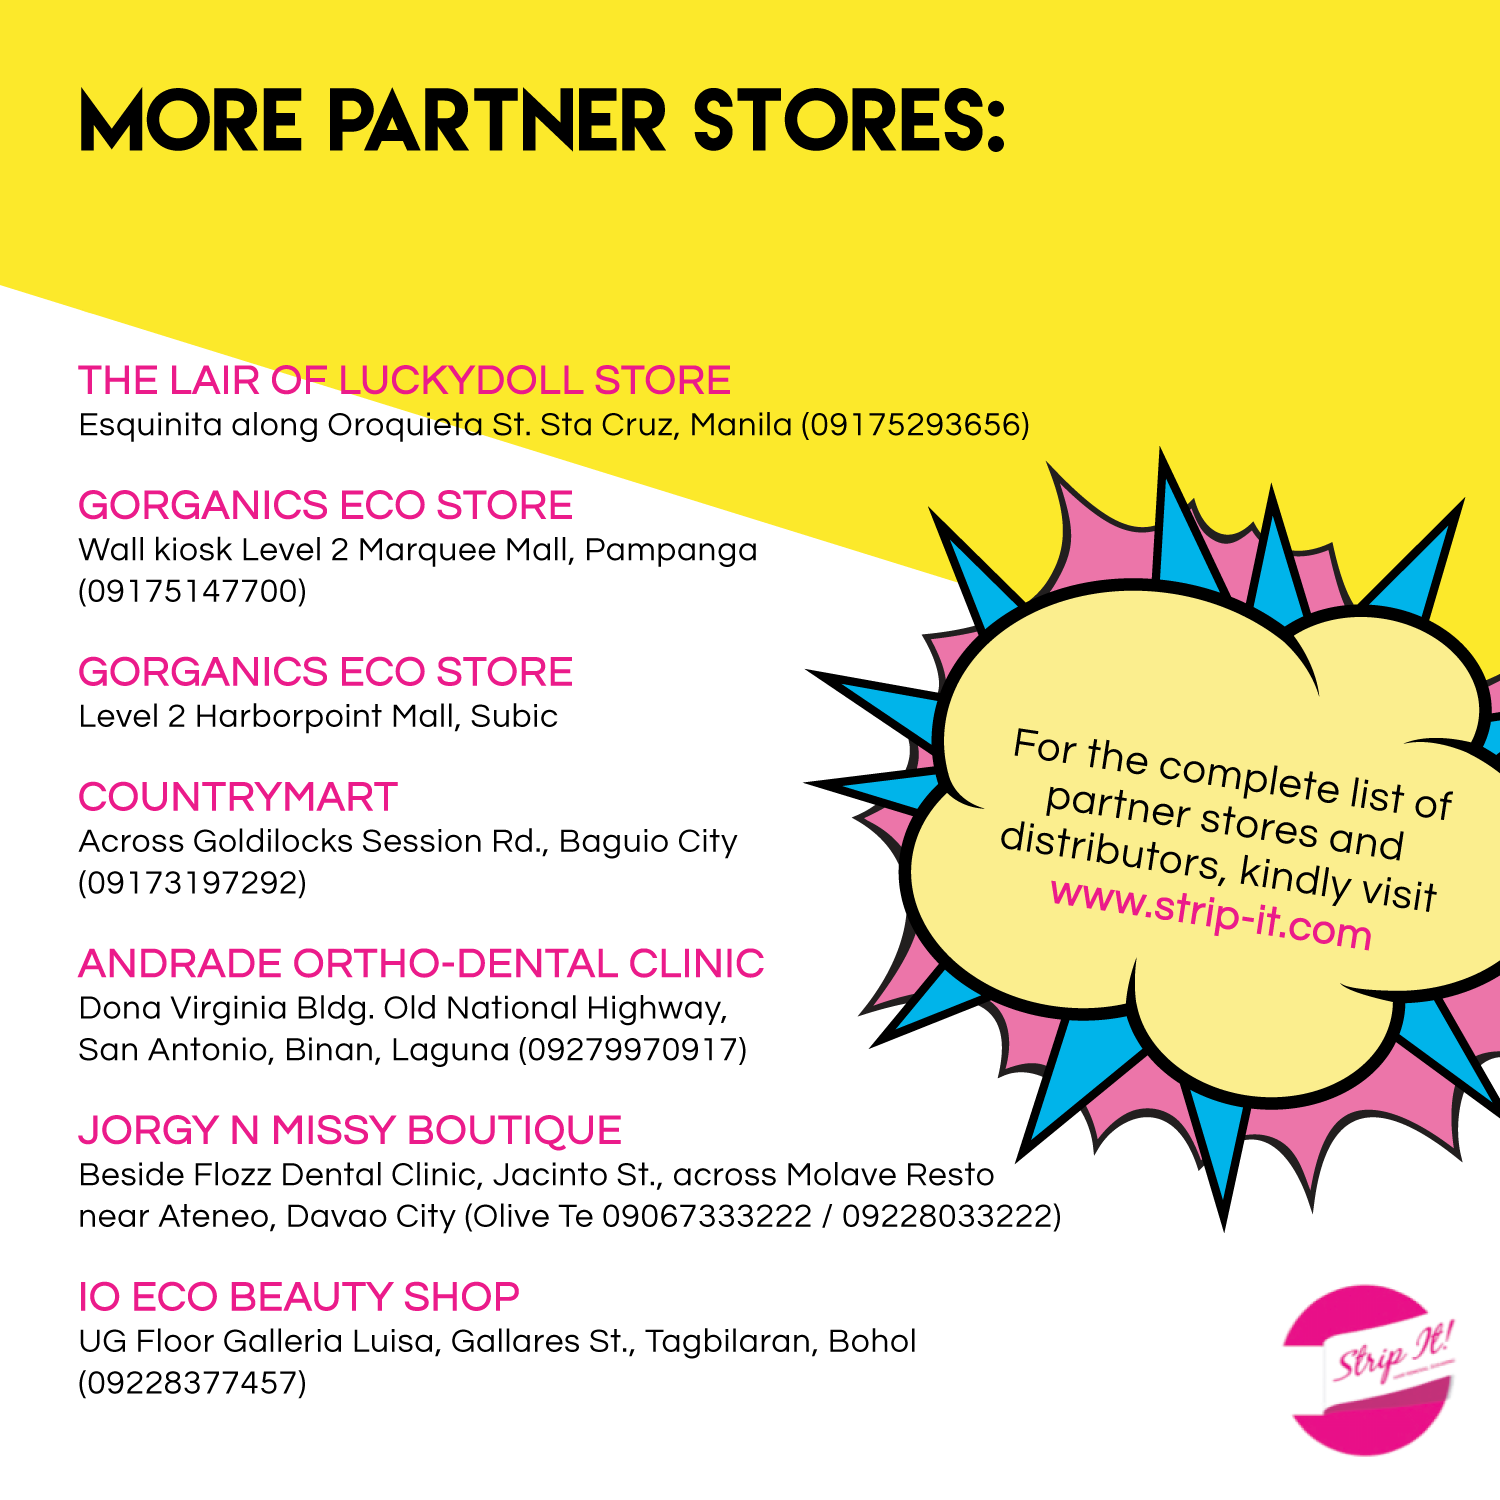 Partner Stores And Distributors